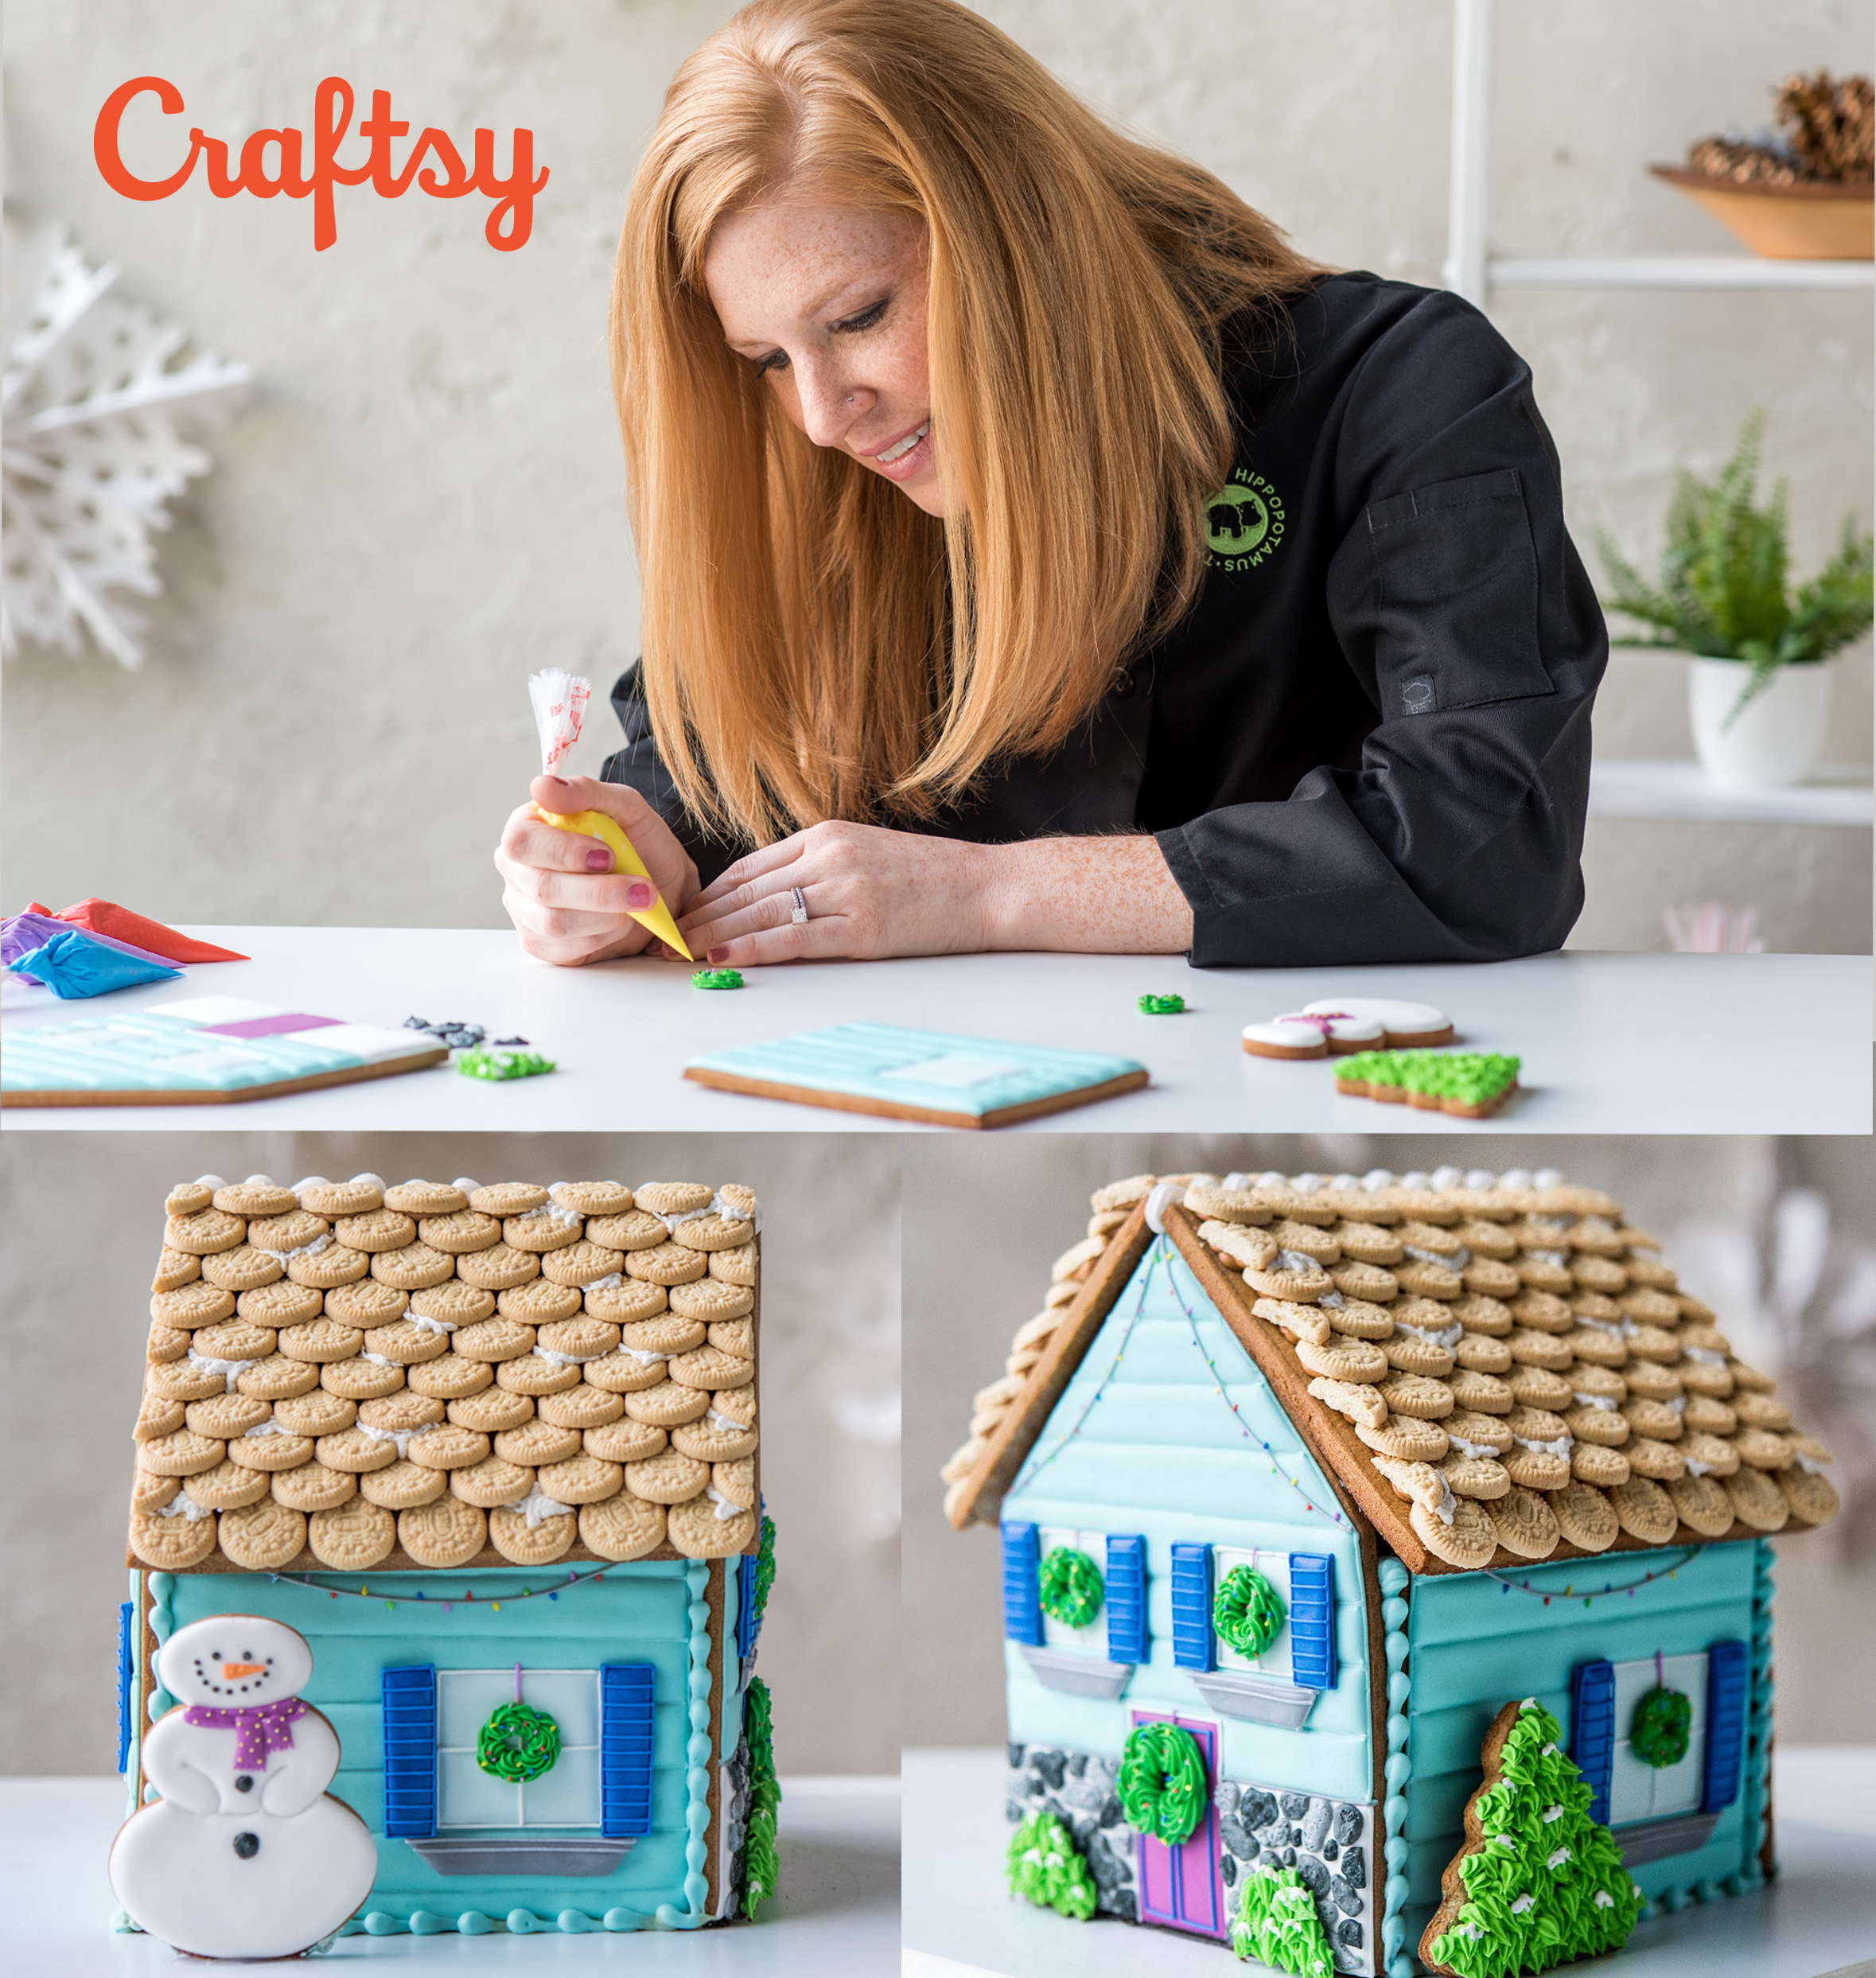 Let's Decorate: Gingerbread House -